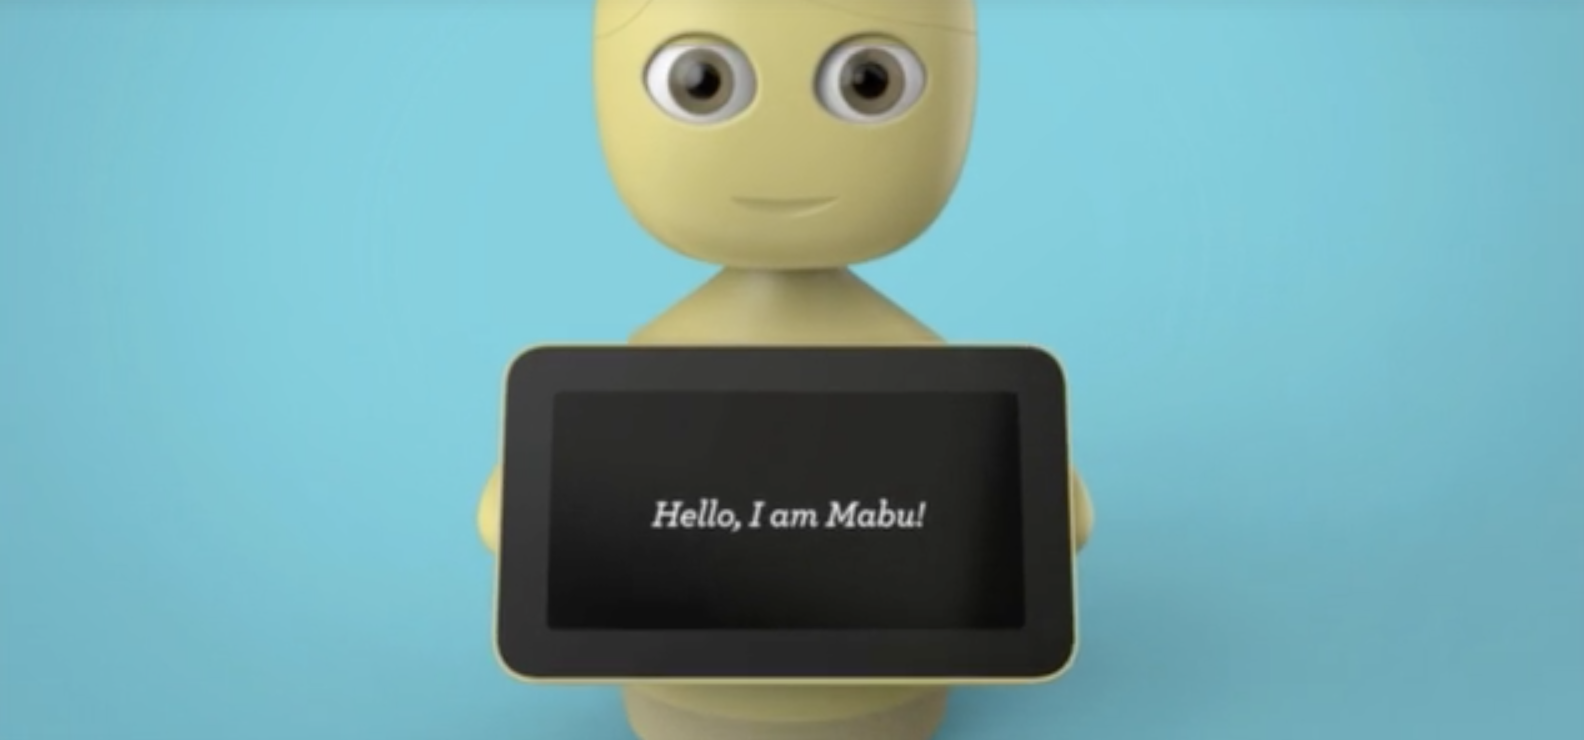 SDK On the Spot: Mabu Healthcare Companion Robot Emotionally Engages with Patients